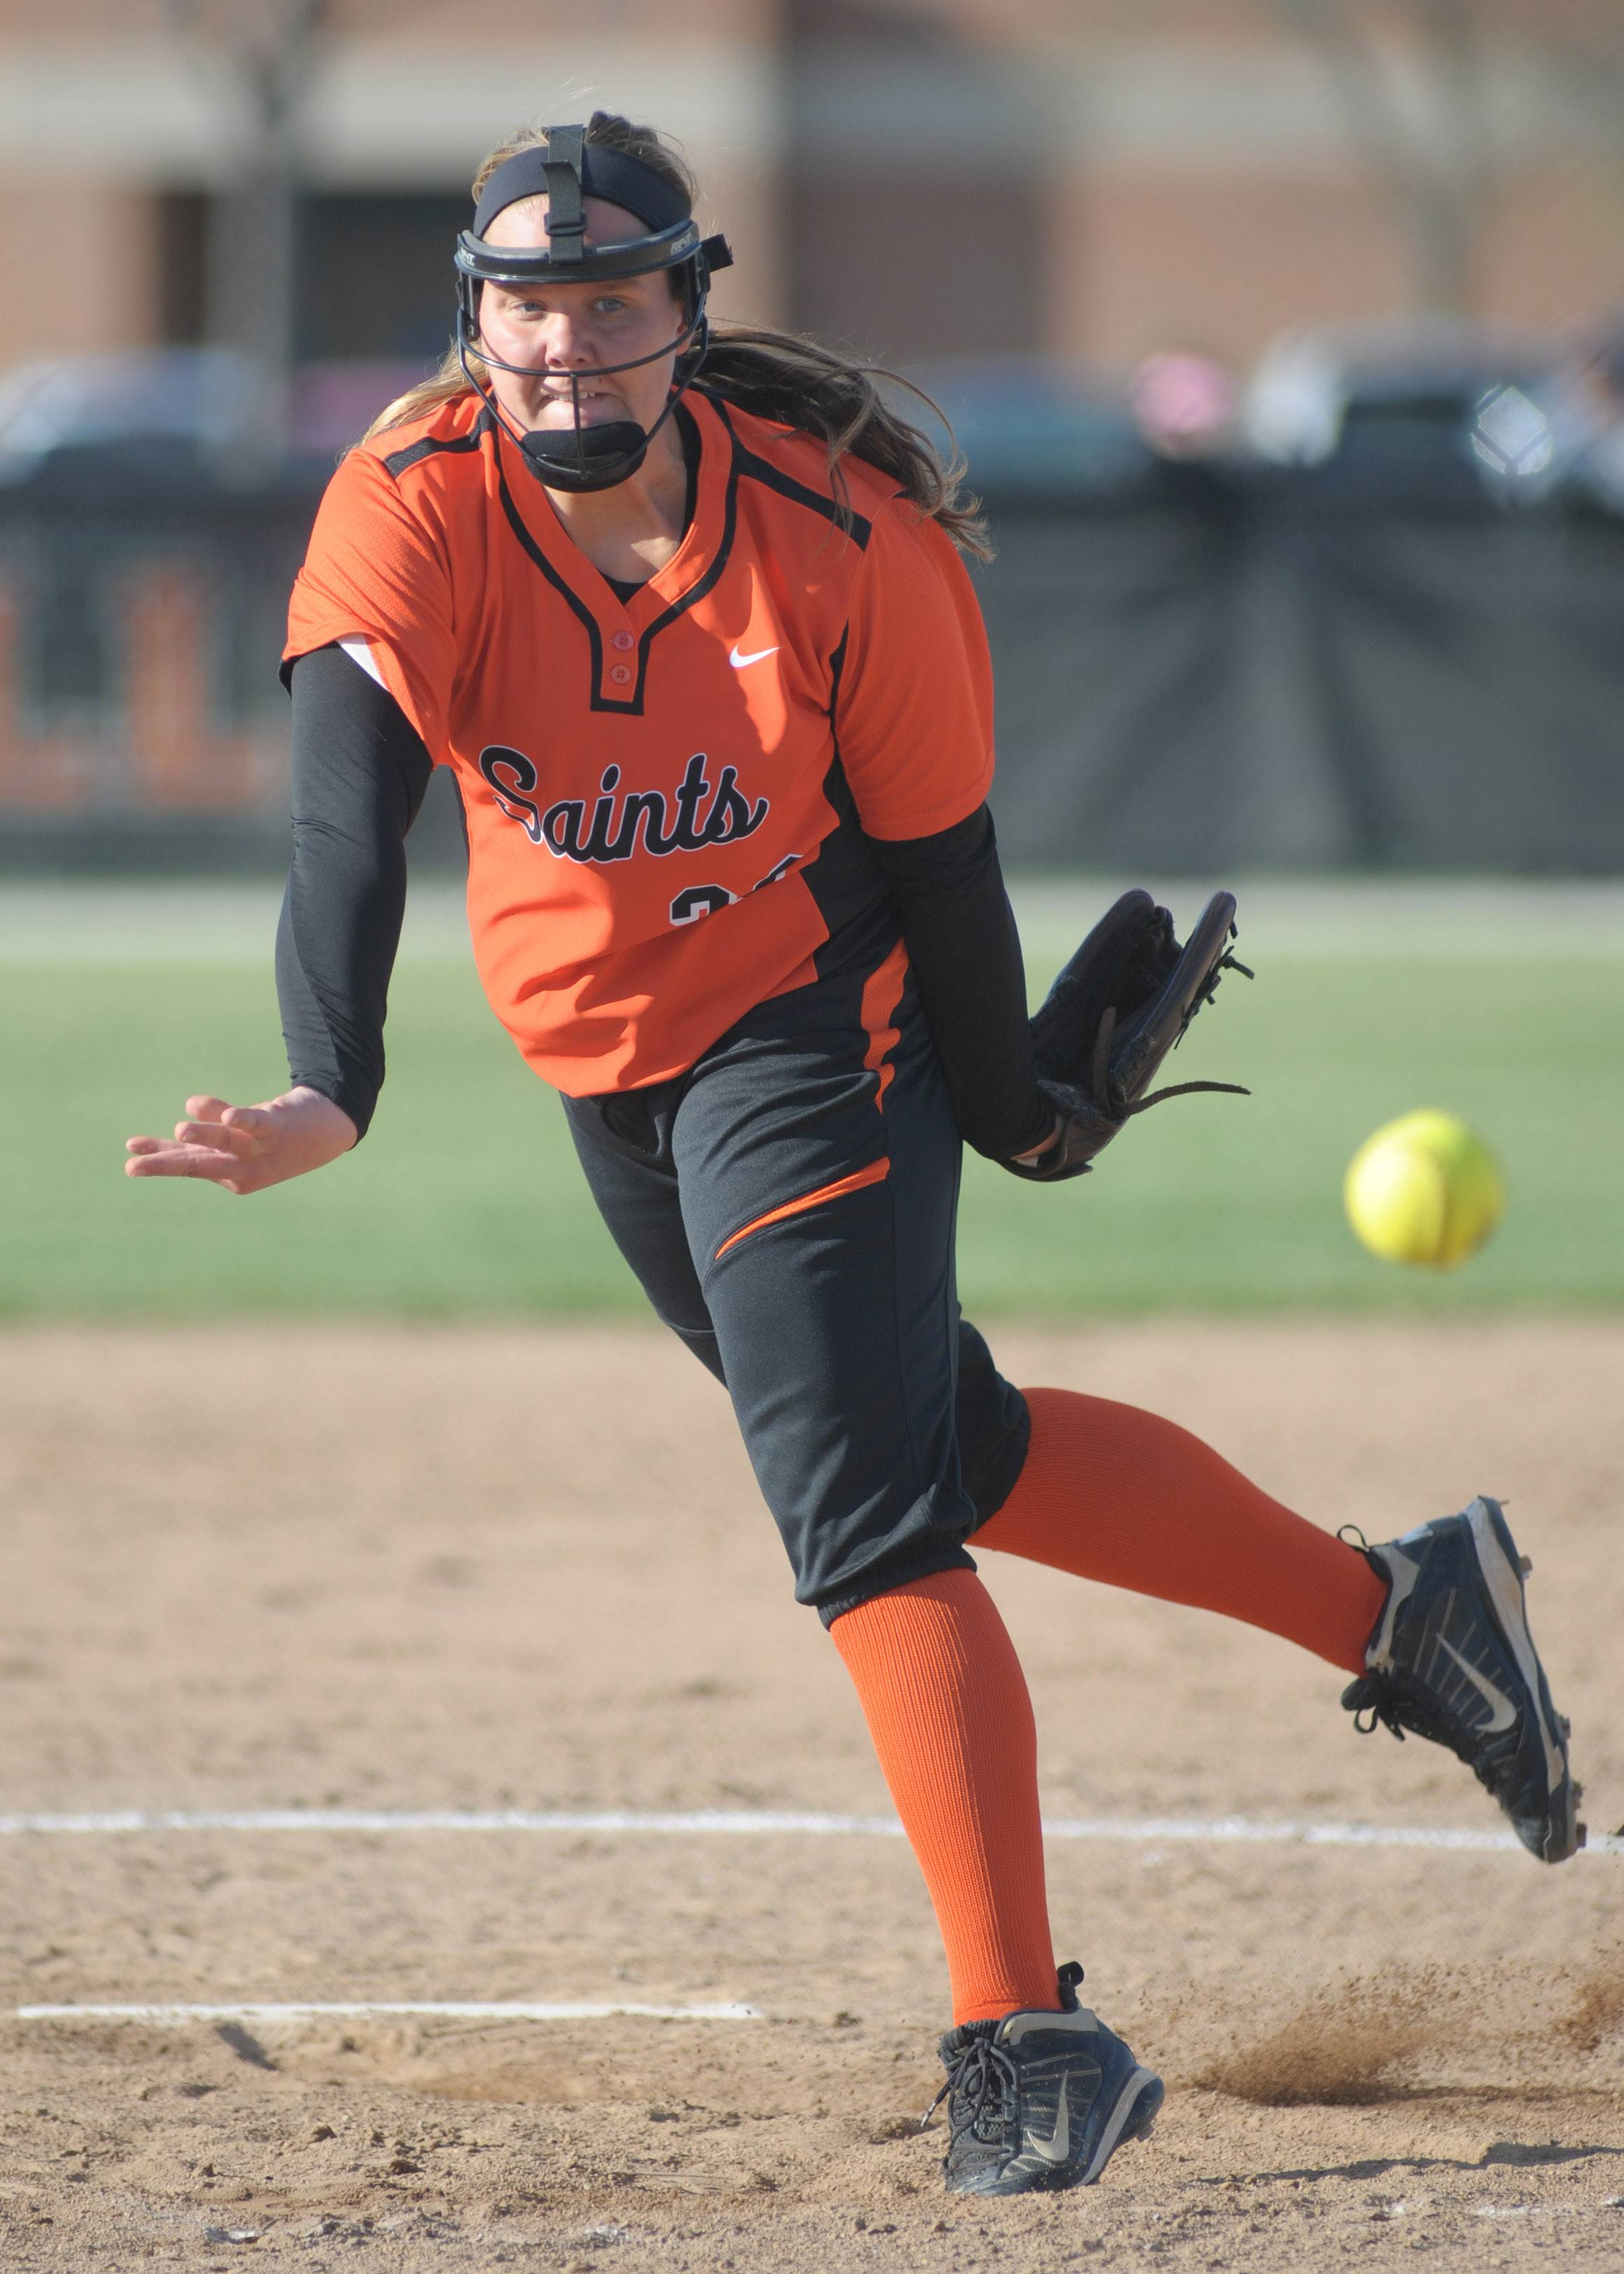 St. Charles East's Haley Beno pitches to Lyons in the fourth inning on Friday, April 25.